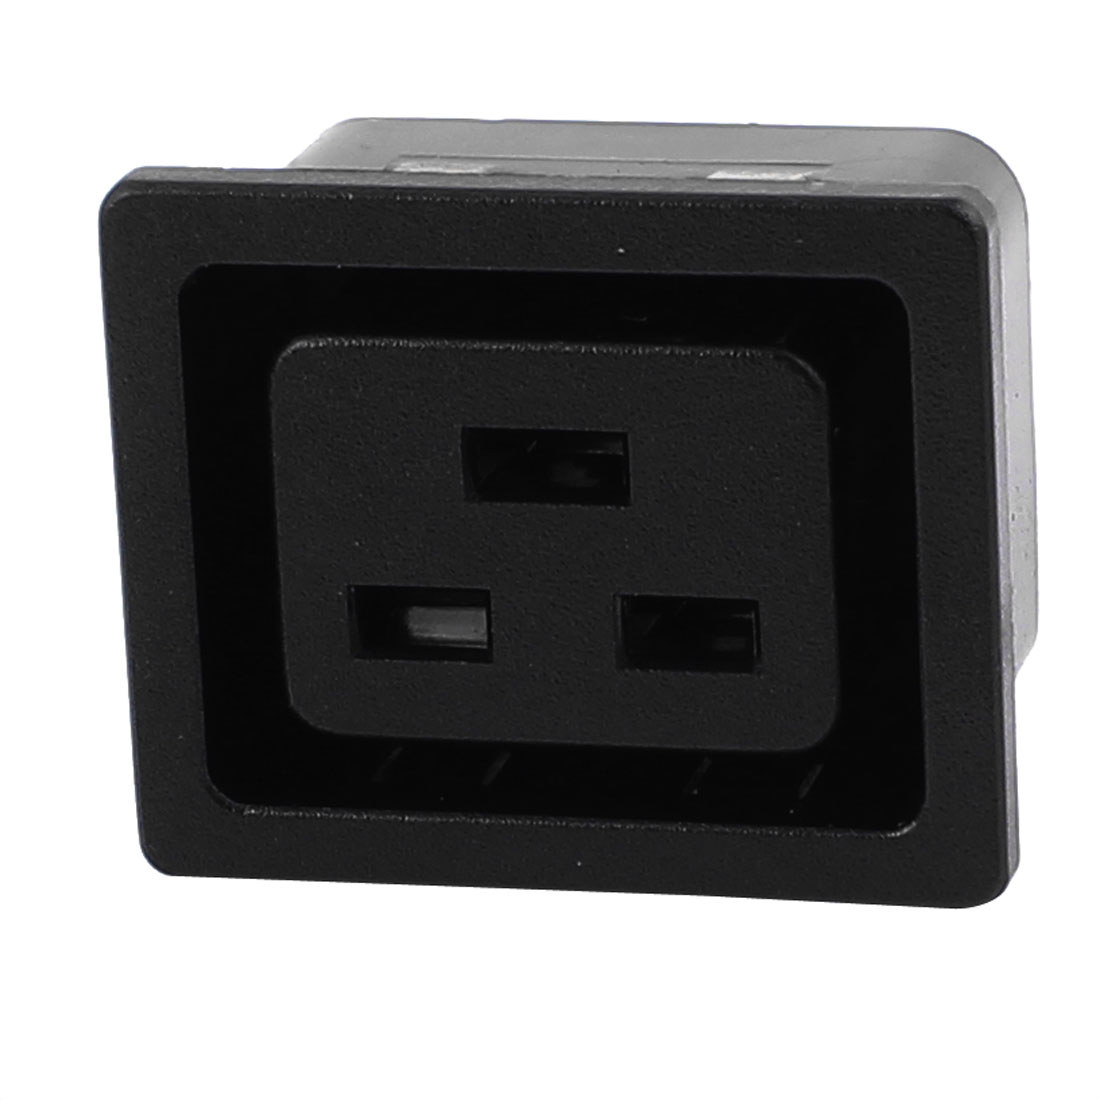 AC 250V 16A 3 Terminal Rewirable IEC19 Series C19 Female Plug Socket